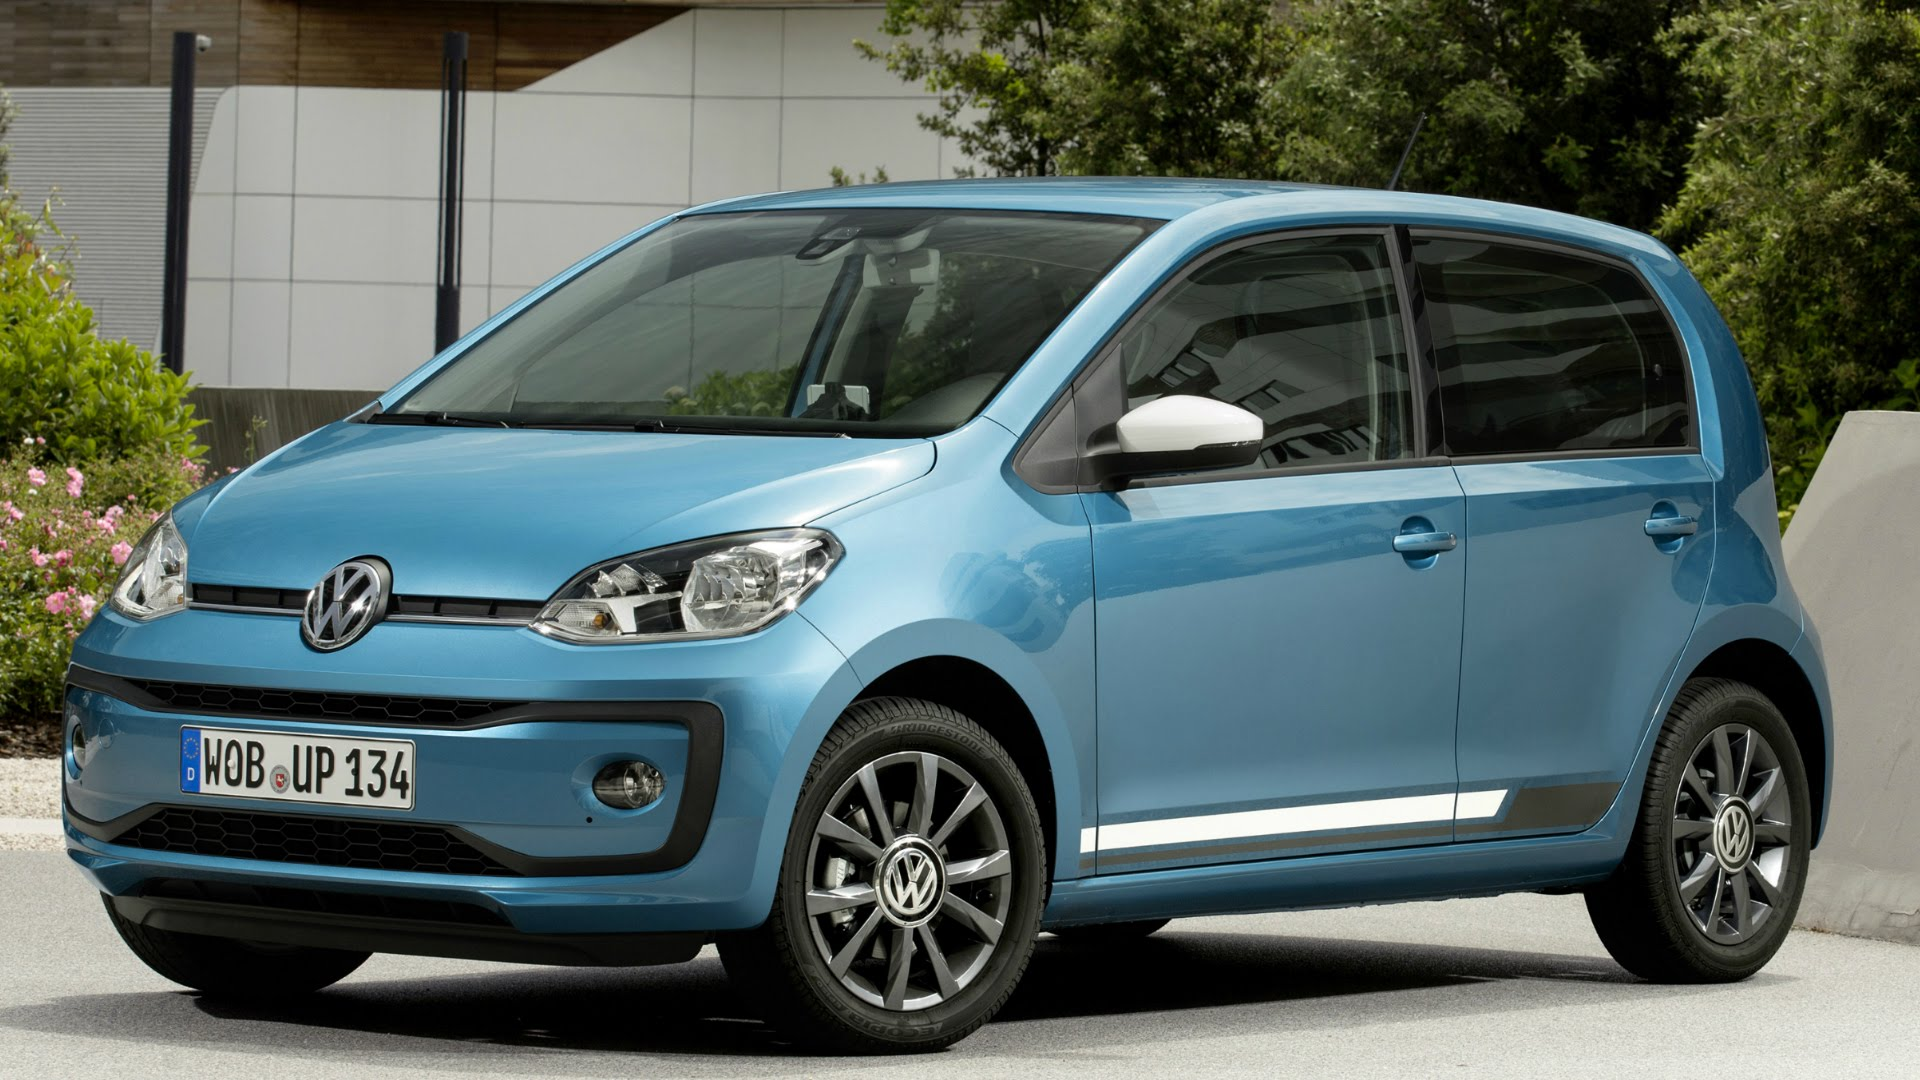 2016 Blue Volkswagen UP Interior, Exterior and Drive - YouTube